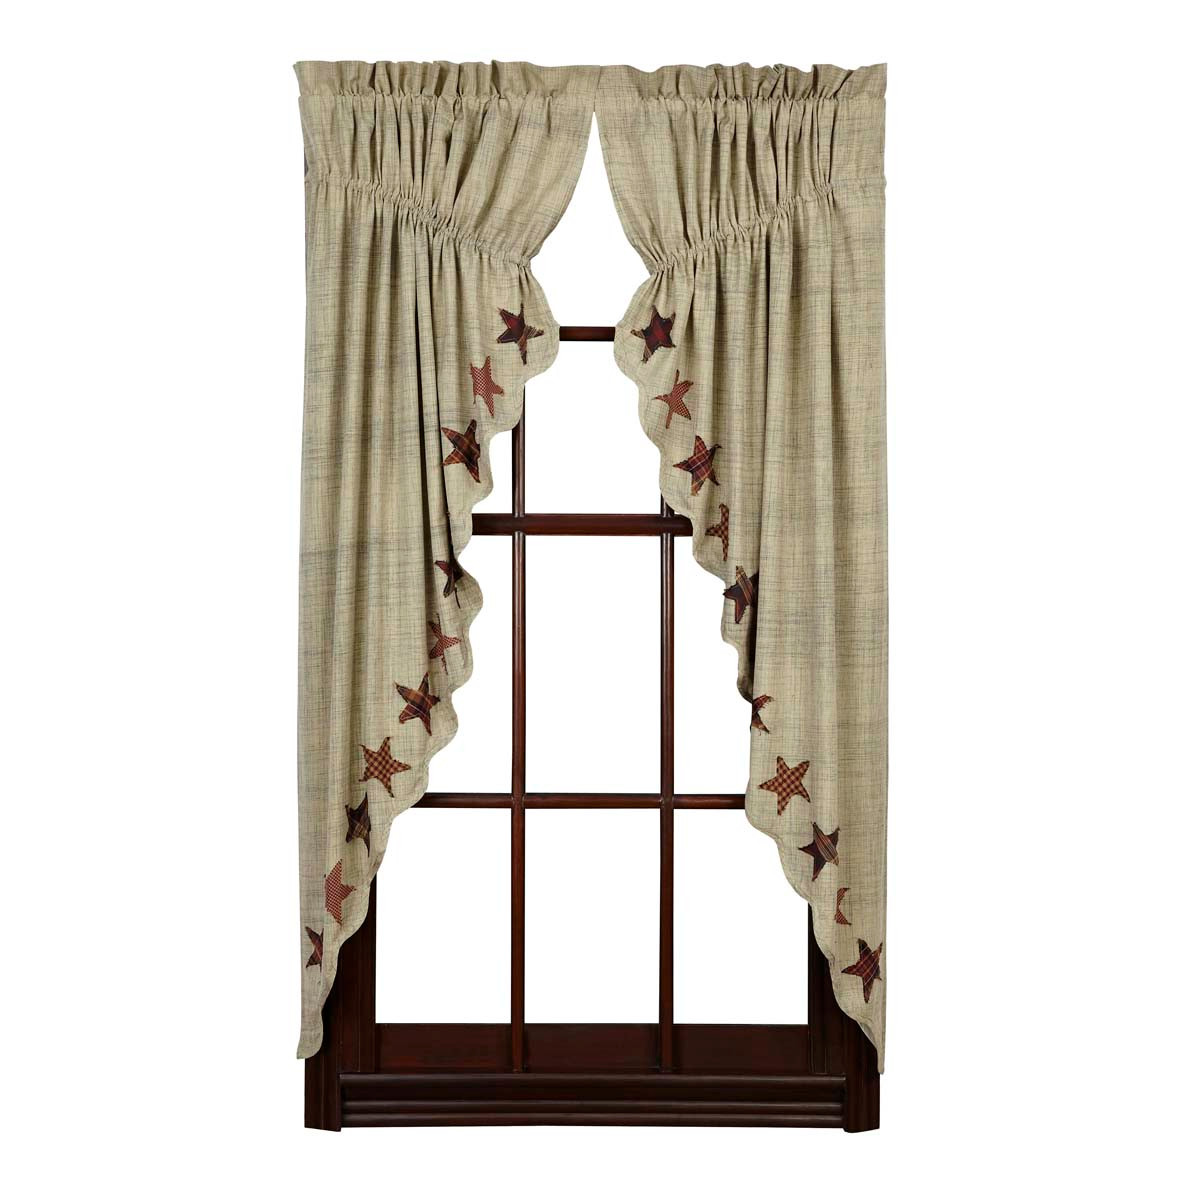 Prairie Curtains Abilene Star 63x36 Victorian Heart